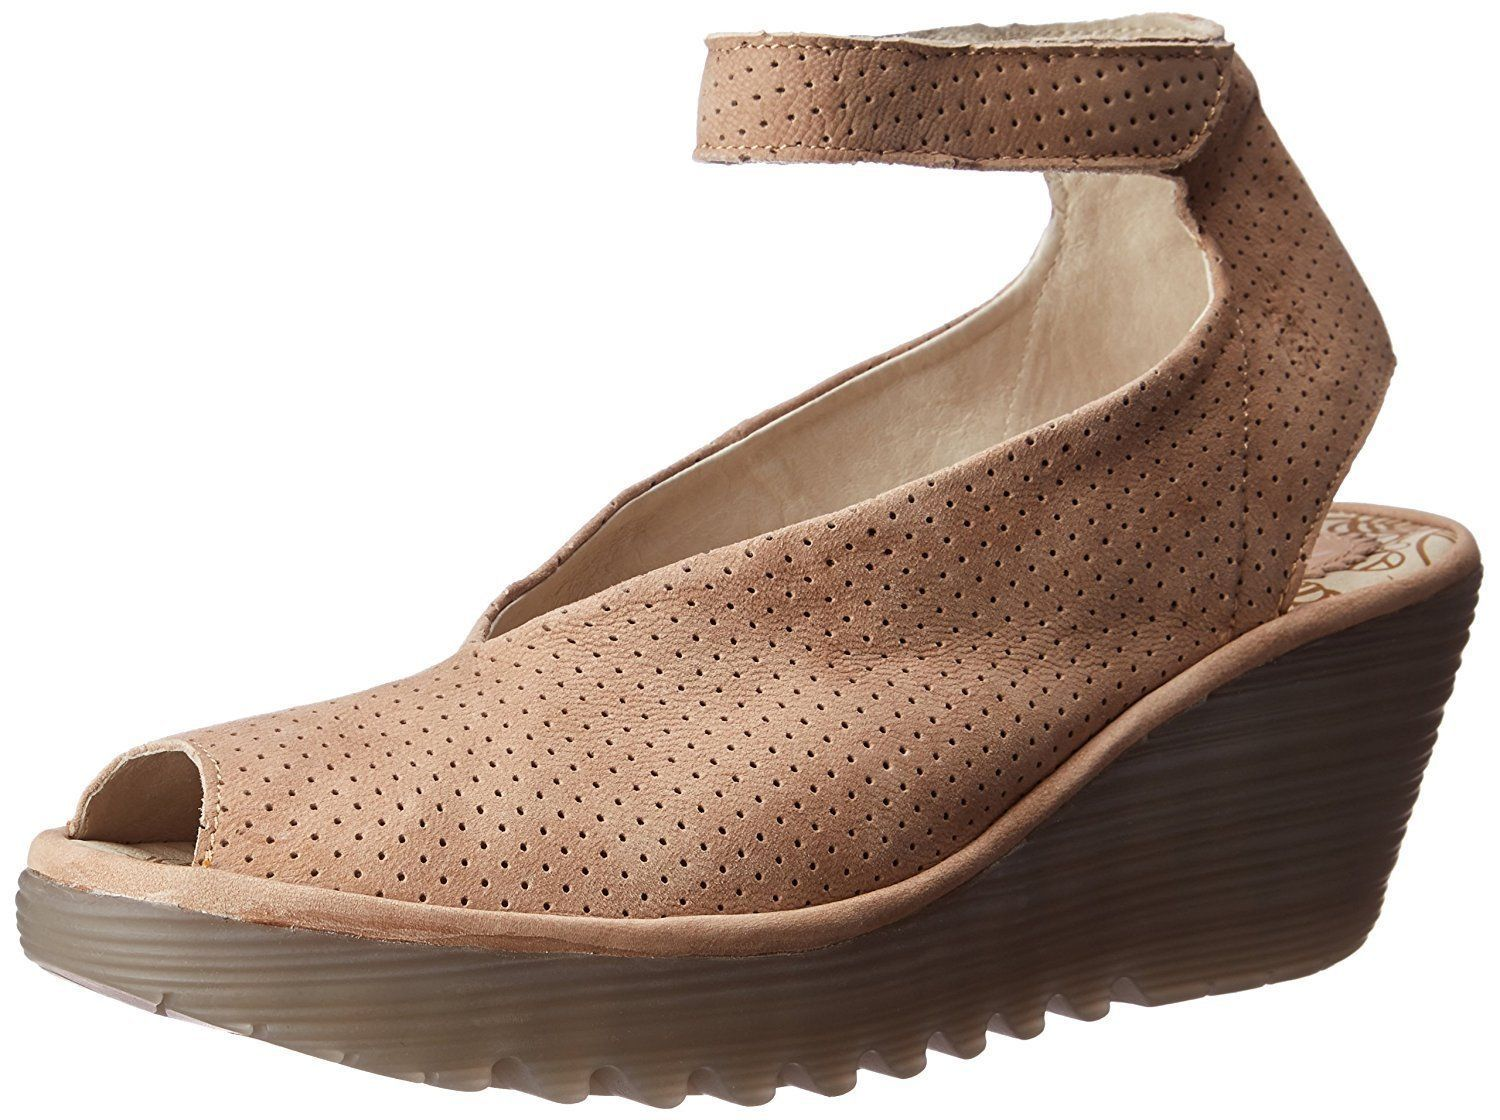 FLY London Women's Yala Perforated Wedge Sandal